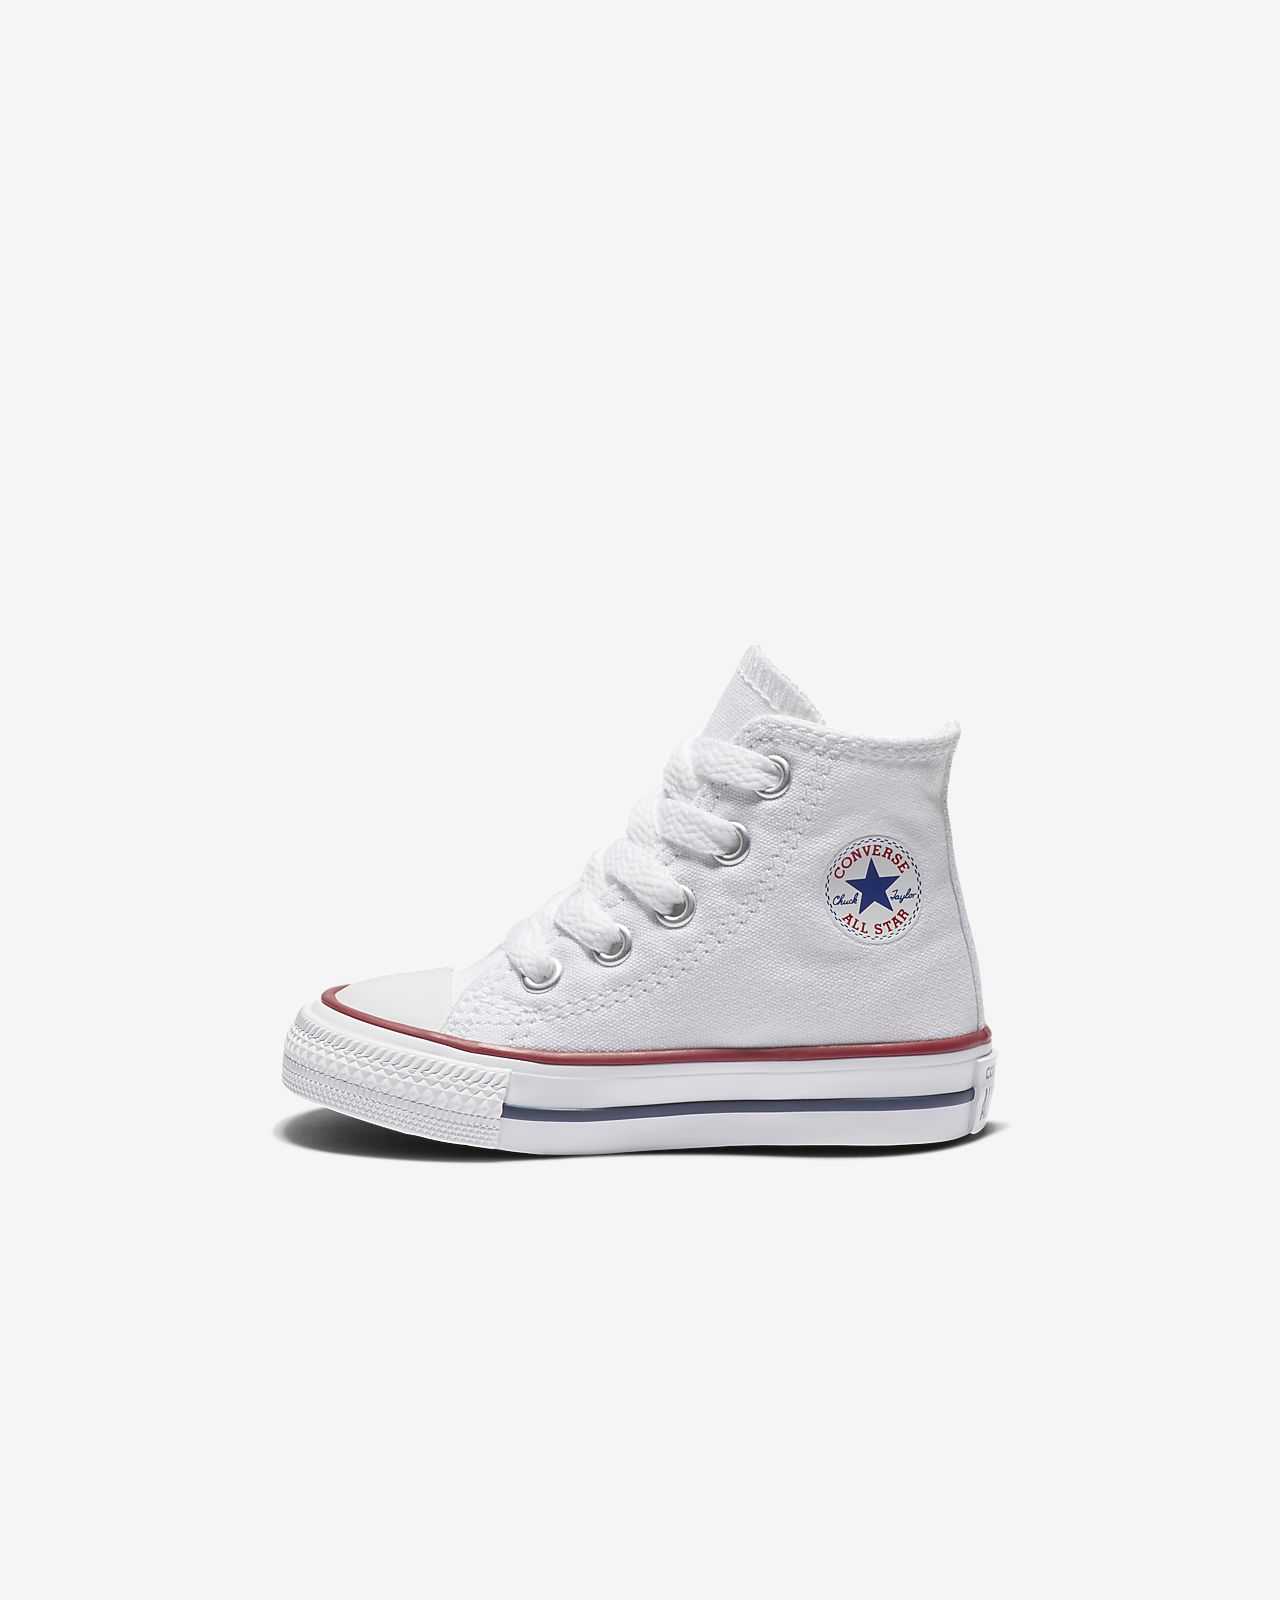 7d5f33bd2f55 Converse Chuck Taylor All Star High Top (2c-10c) Infant Toddler Shoe ...